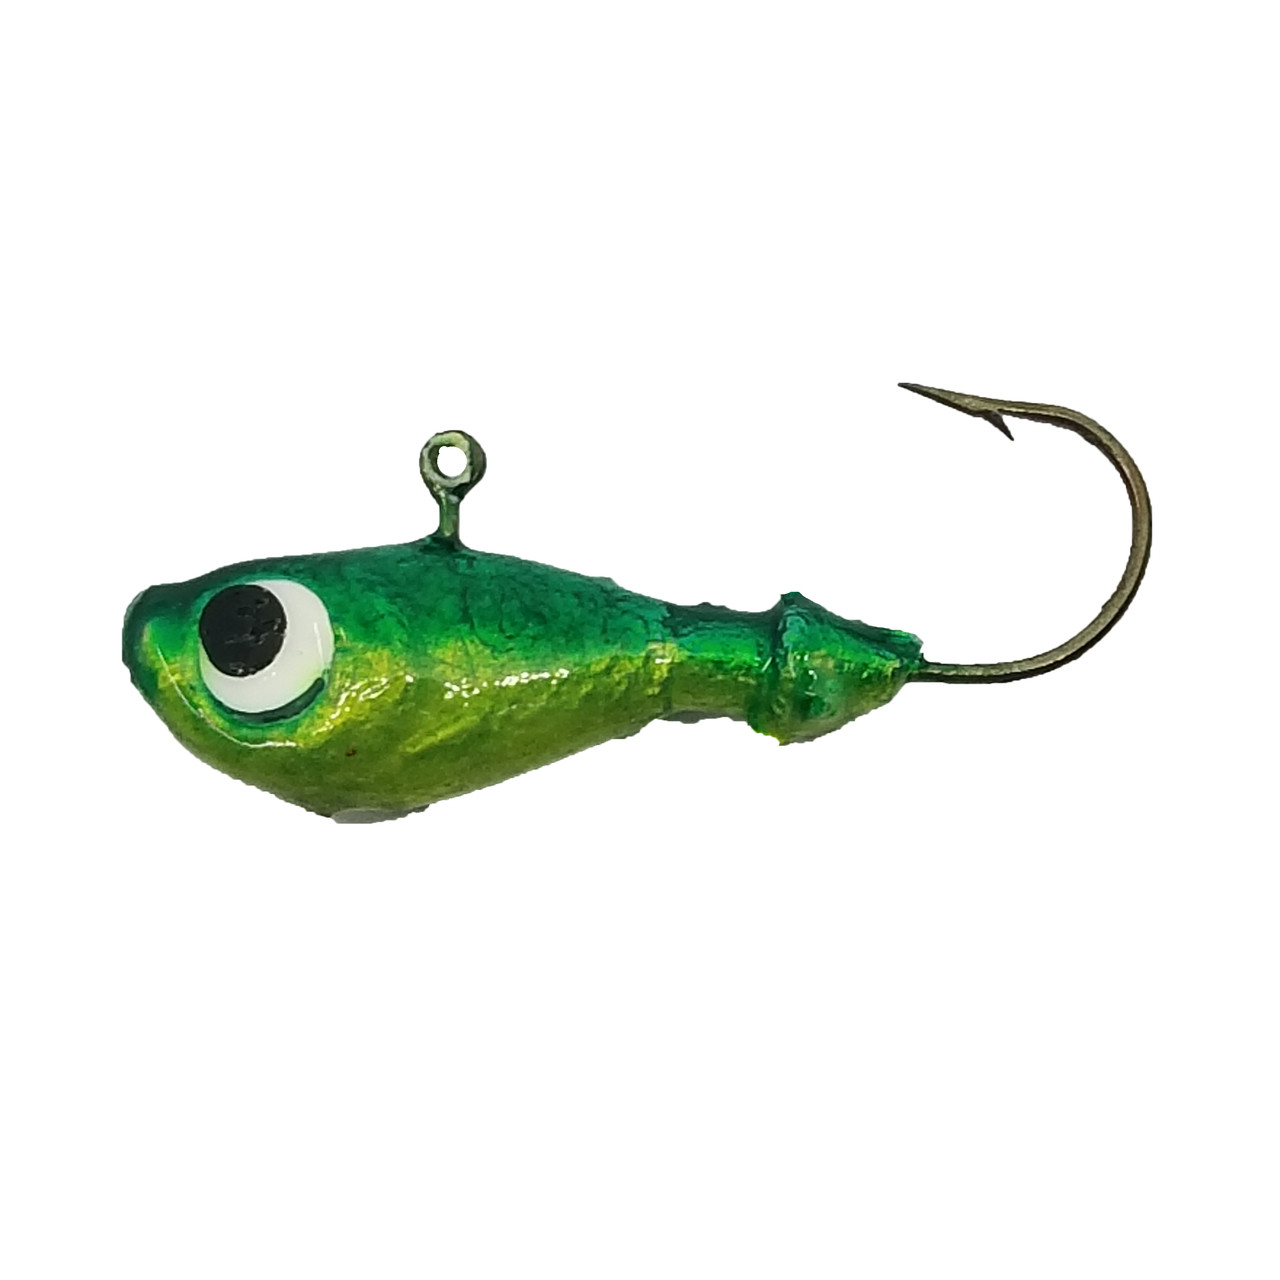 Ultra Minnow   Alysha's #1 Tackle Box Go To  Looking for realistic presentation of a jig? Then look no further. The ultra minnow jigs have great detail including gill plates, fins, lips, scales and recessed eyes and pronounced brow. Also includes center balanced feature  and 90 degree eye that make these great for vertical jigging and trolling because they mimic horizontal swimming motion of a natural minnow. With our clean and simple UV paint designs we wanted to ensure that the details of the actual jig are not over coated and hidden.  These are also an excellent option for tying bucktail and maribou on.   1/8 oz are ideal for perch and panfish species. These are so like-like that perch are known to bite these even without bait. ¼ oz are idea size for walleye and pike. Has the walleye bite slowed down in the heat of the day? Then contact us about getting 3/8 oz to 5/8 oz ultra minnows, then you can attach a swivel to them and troll them. The sleek design allows for excellent trolling action, tipped with a dew worm, leech, or favourite soft plastic, they slice through the water as if they, themselves are swimming along.